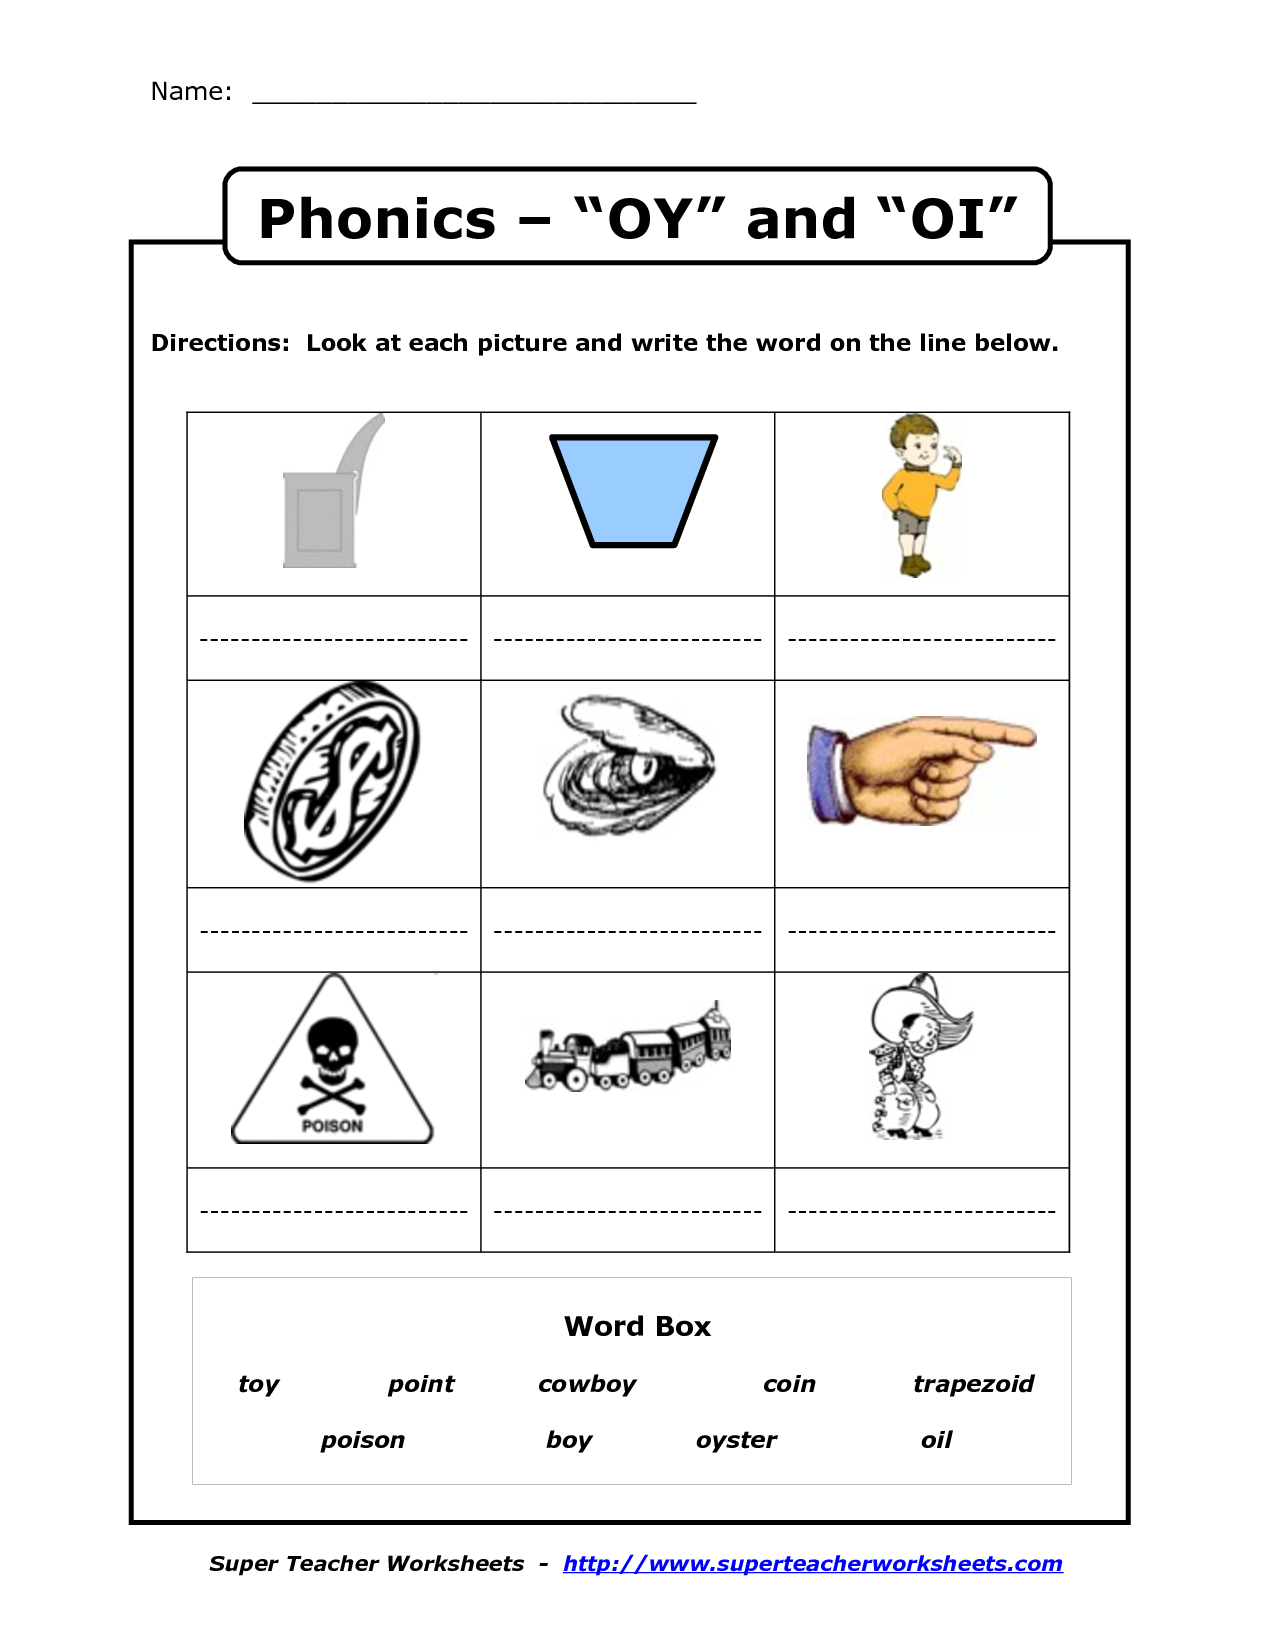 worksheet Diphthong Worksheets oy and oi phonics worksheets school worksheets